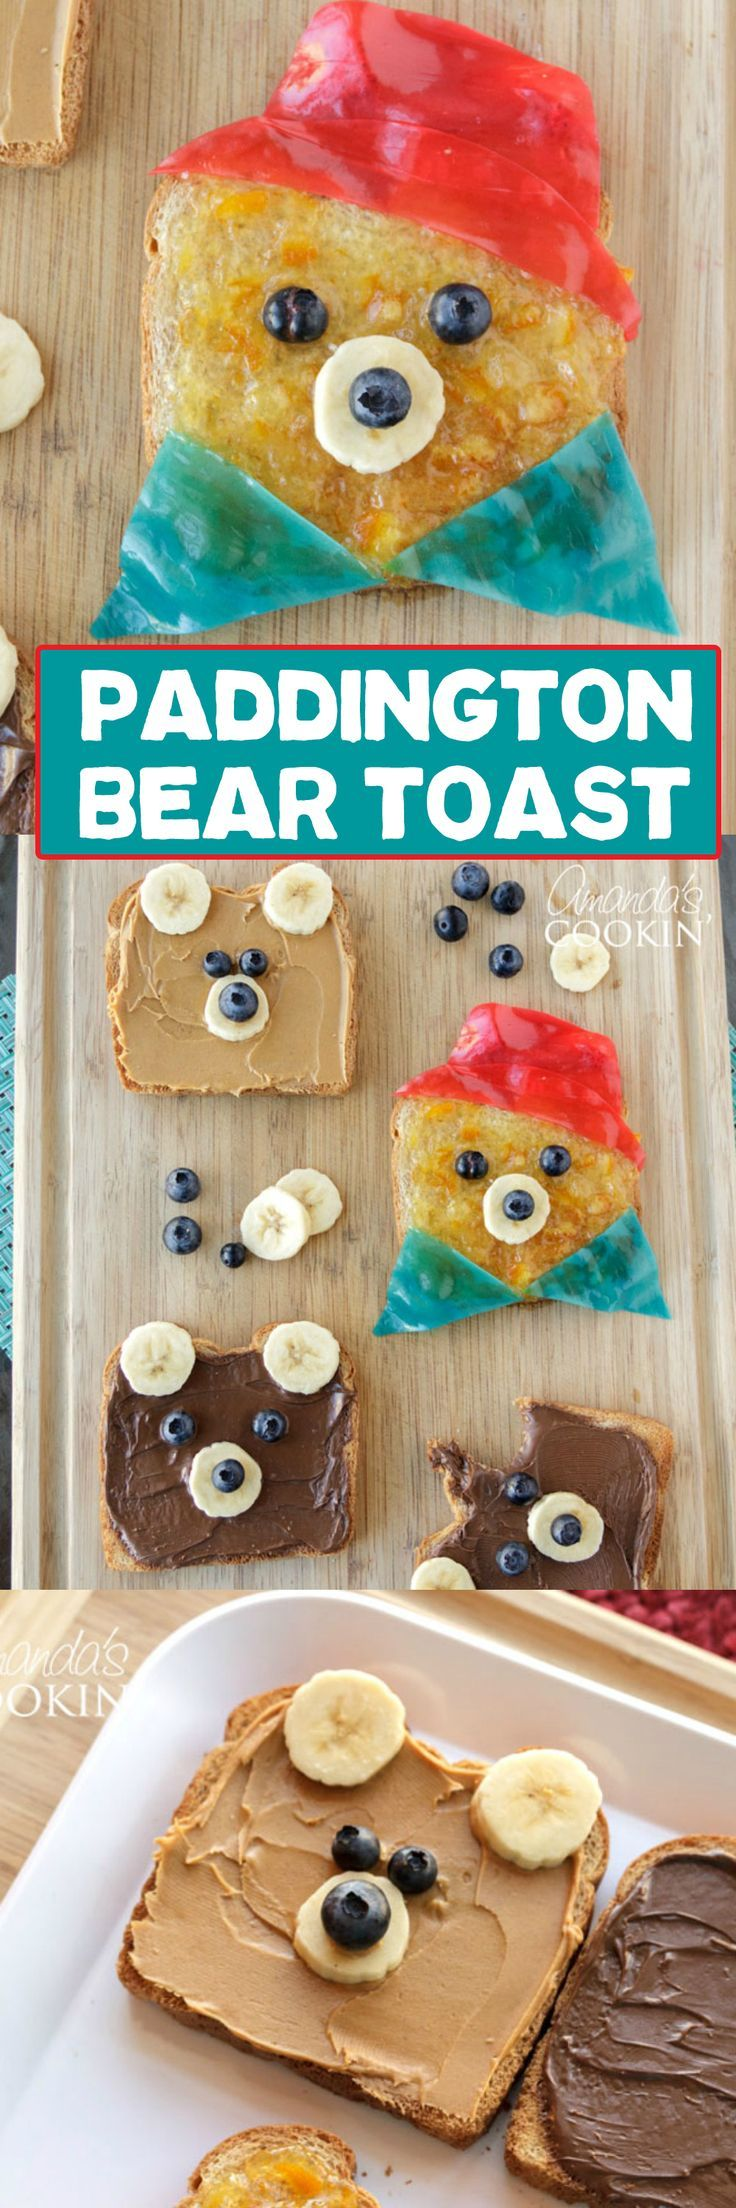 Kids will swoon over this Paddington inspired bear toast, and they will love helping make it as well! Can you think of a better way to eat your toast in the morning? #Paddington2 is in theaters January 12 - don't miss it! #sponsored